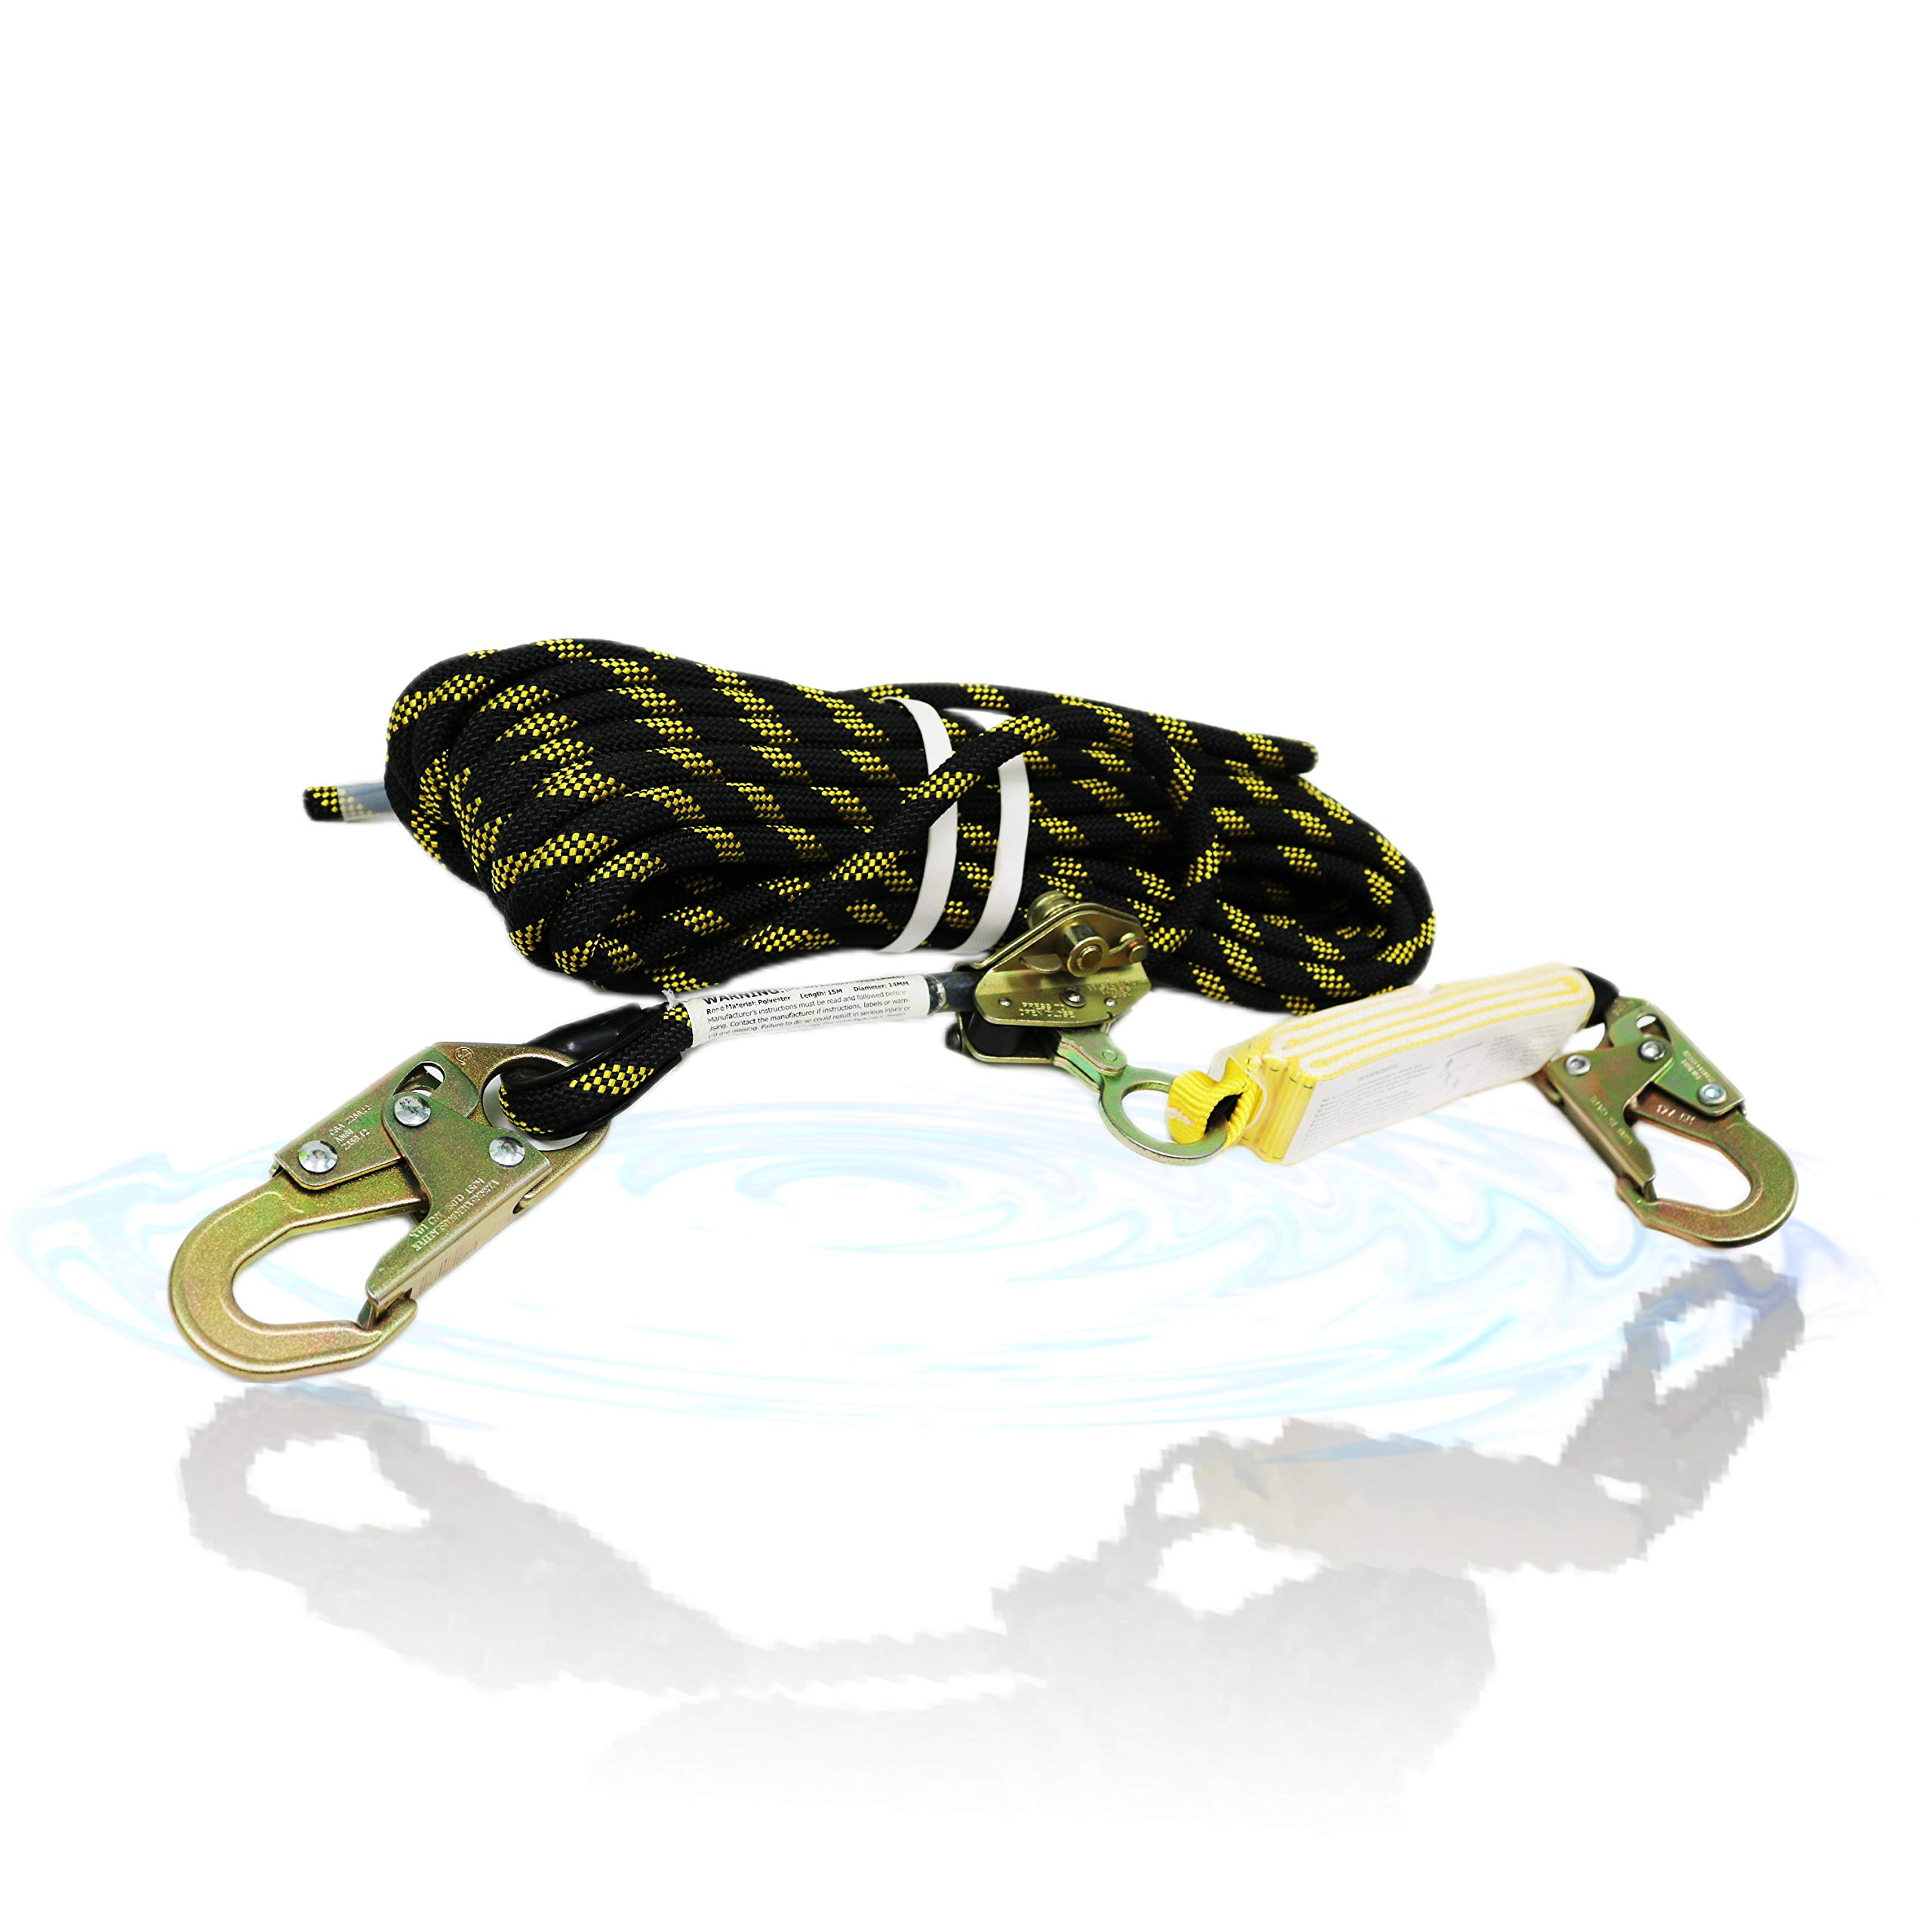 KwikSafety (Charlotte, NC) TSUNAMI Vertical Lifeline Assembly (HEAVY DUTY BRAIDED ROPE) 100 ft. Rope Grab Snap Hook External Shock Absorber ANSI OSHA Fall Arrest Restraint Protection Safety Equipment by KwikSafety